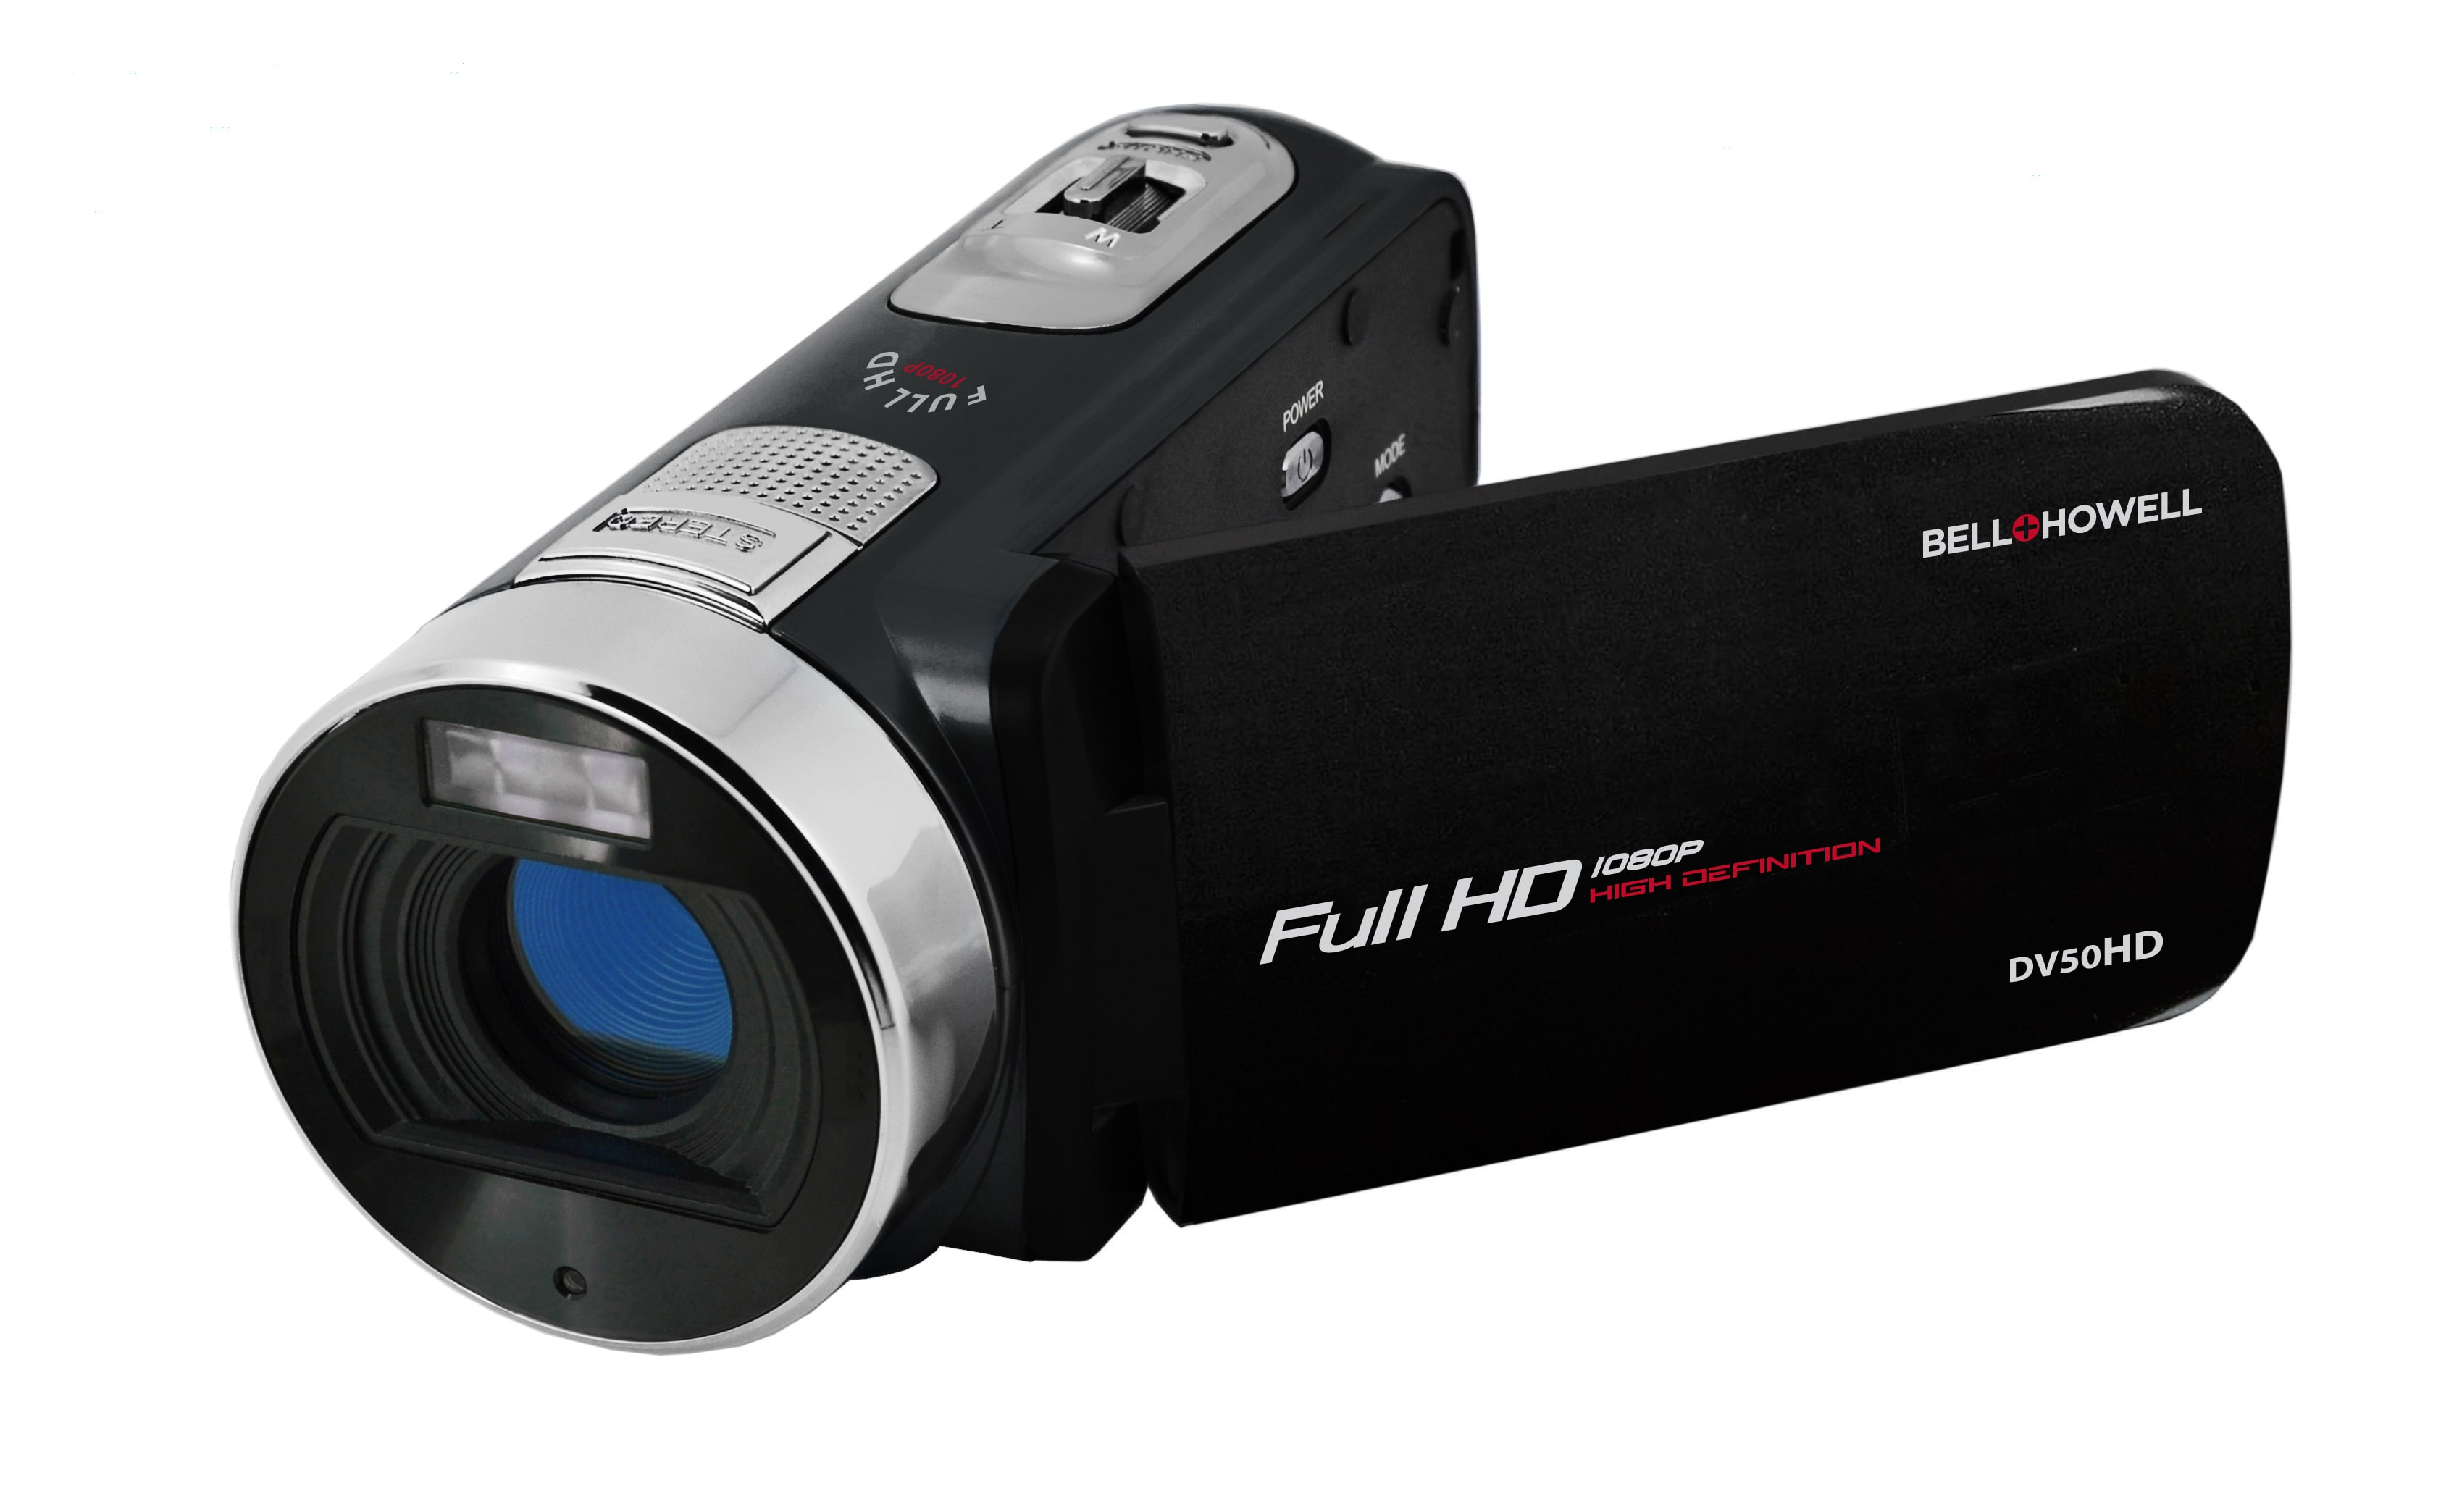 Bell and Howell DV50HD 1080p Full HD Video Camcorder with 20.0 MP Still Image Resolution and 3-inches Touch Screen LCD